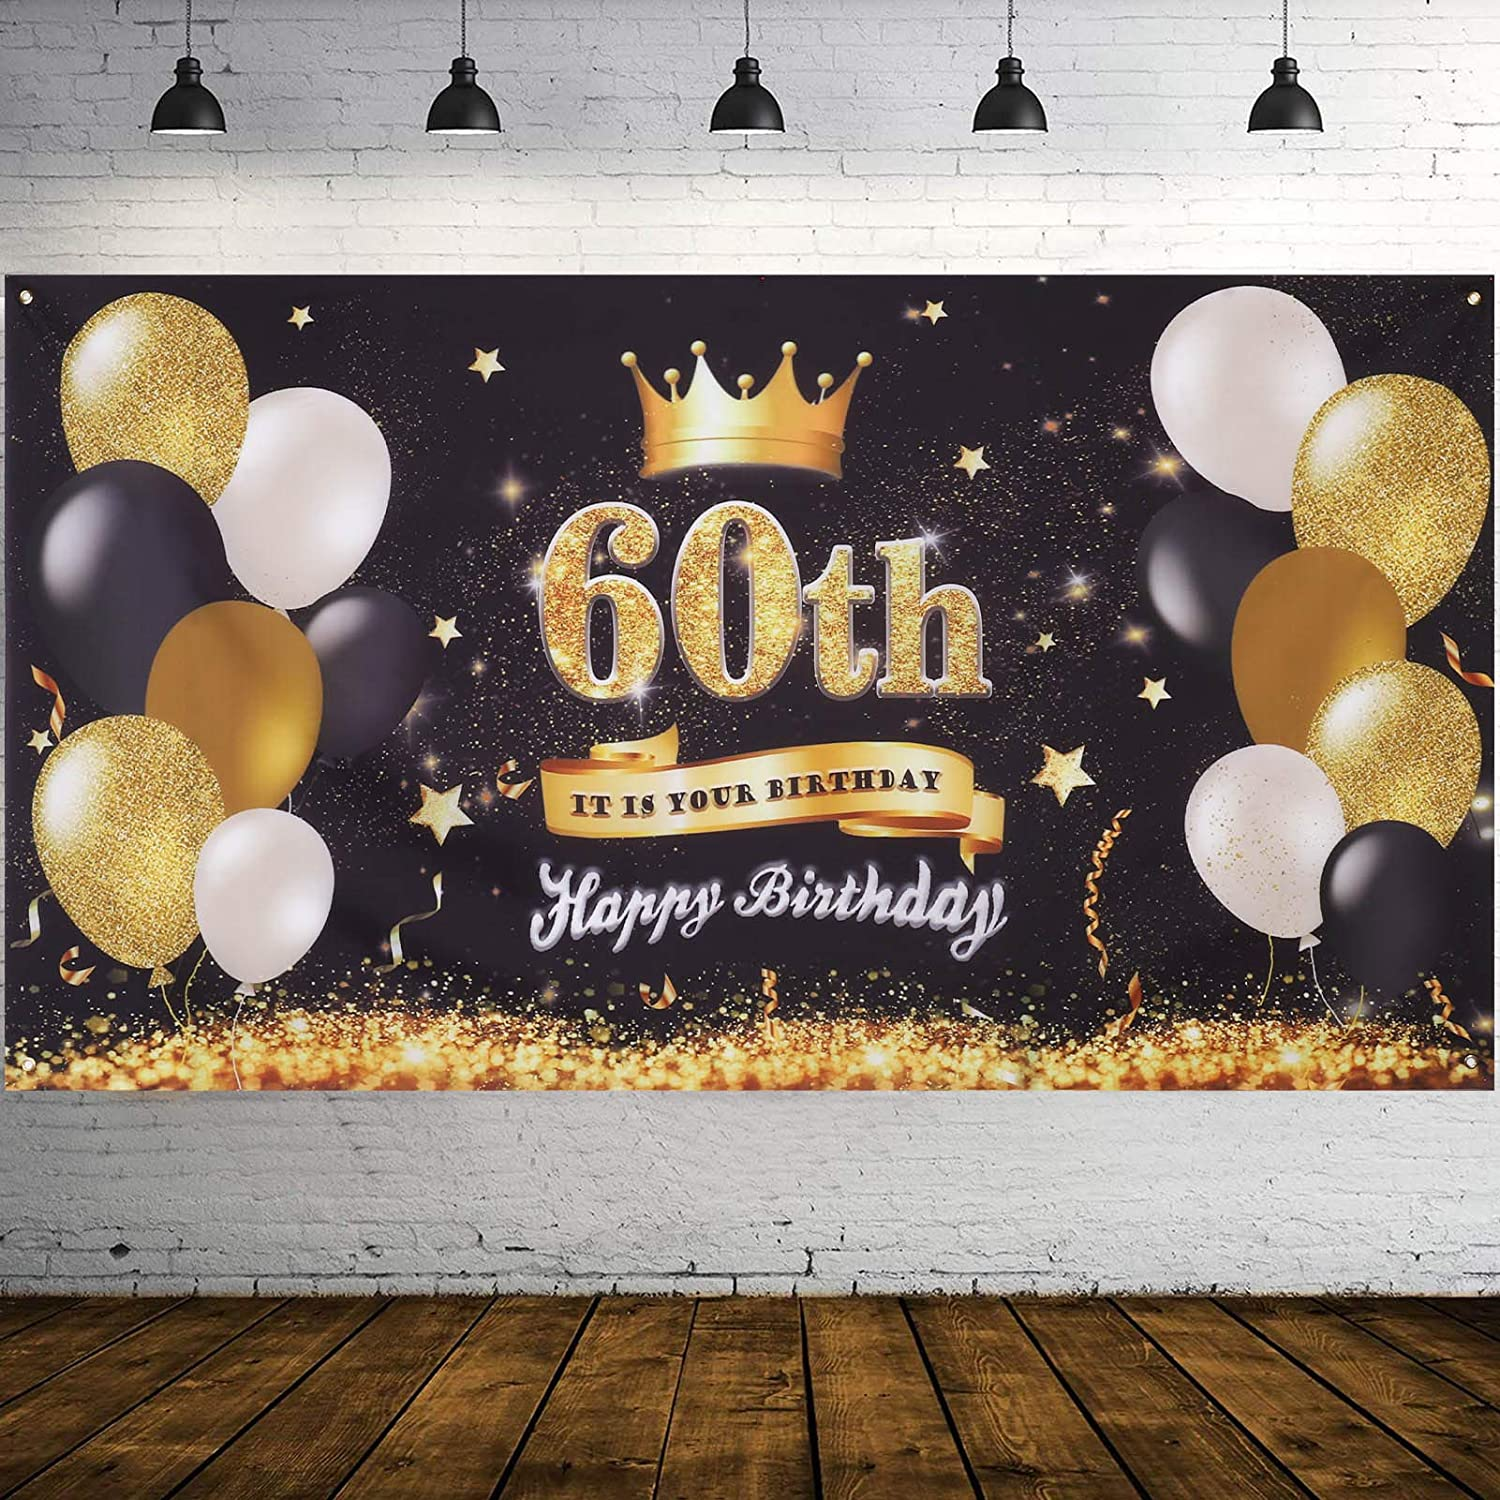 SUSSURRO Happy 60th Birthday Backdrop Banner Cheers to 60 Years Background Banners 71 x 39 Extra Large Backdrops Balloons Black Gold Party Decorations Supplies for Indoor Outdoor Photo Booth Props